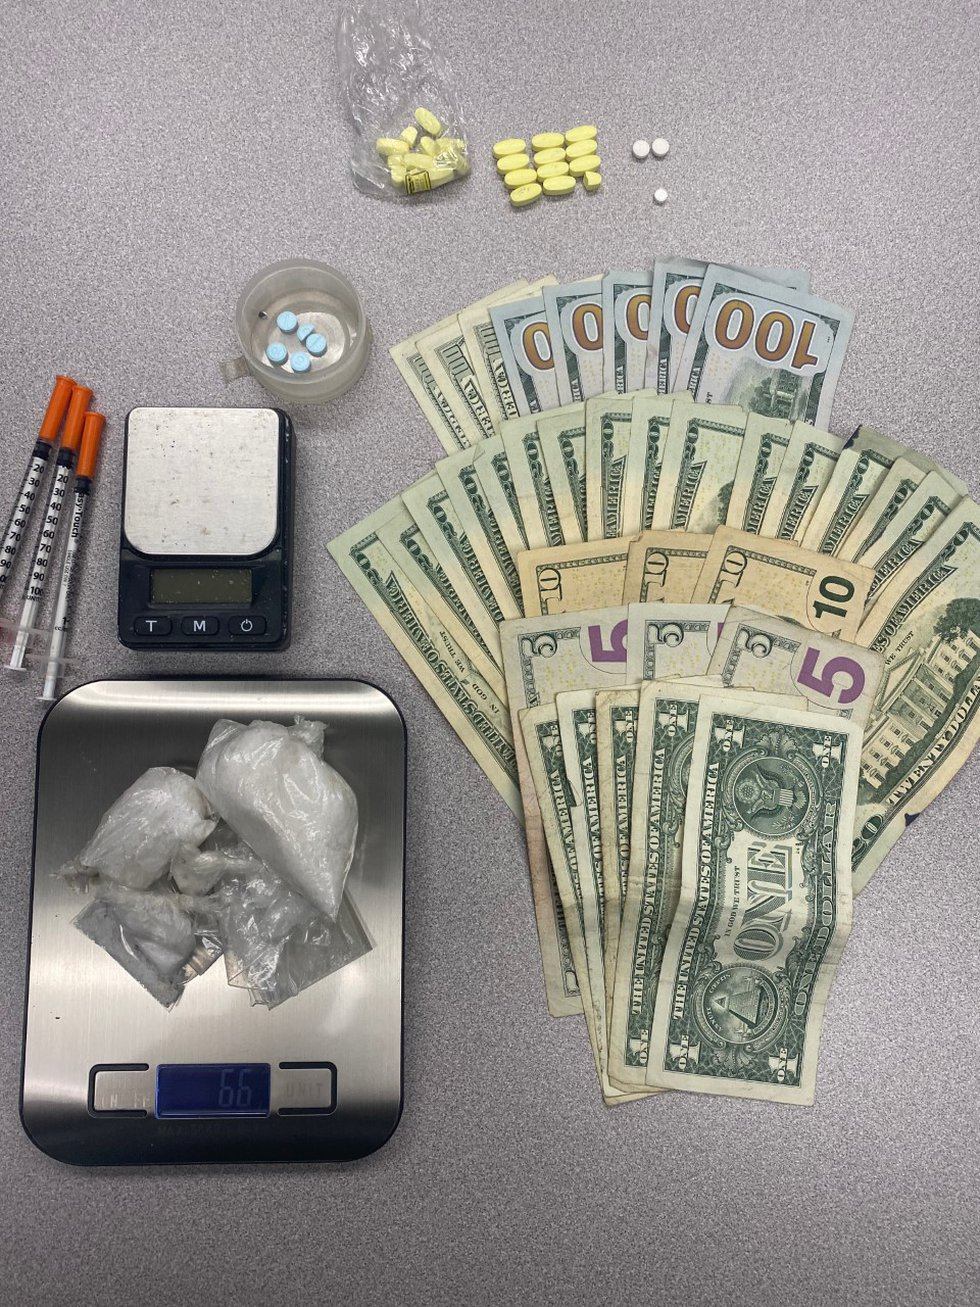 Drugs, cash, and drug paraphernalia found during search of residence